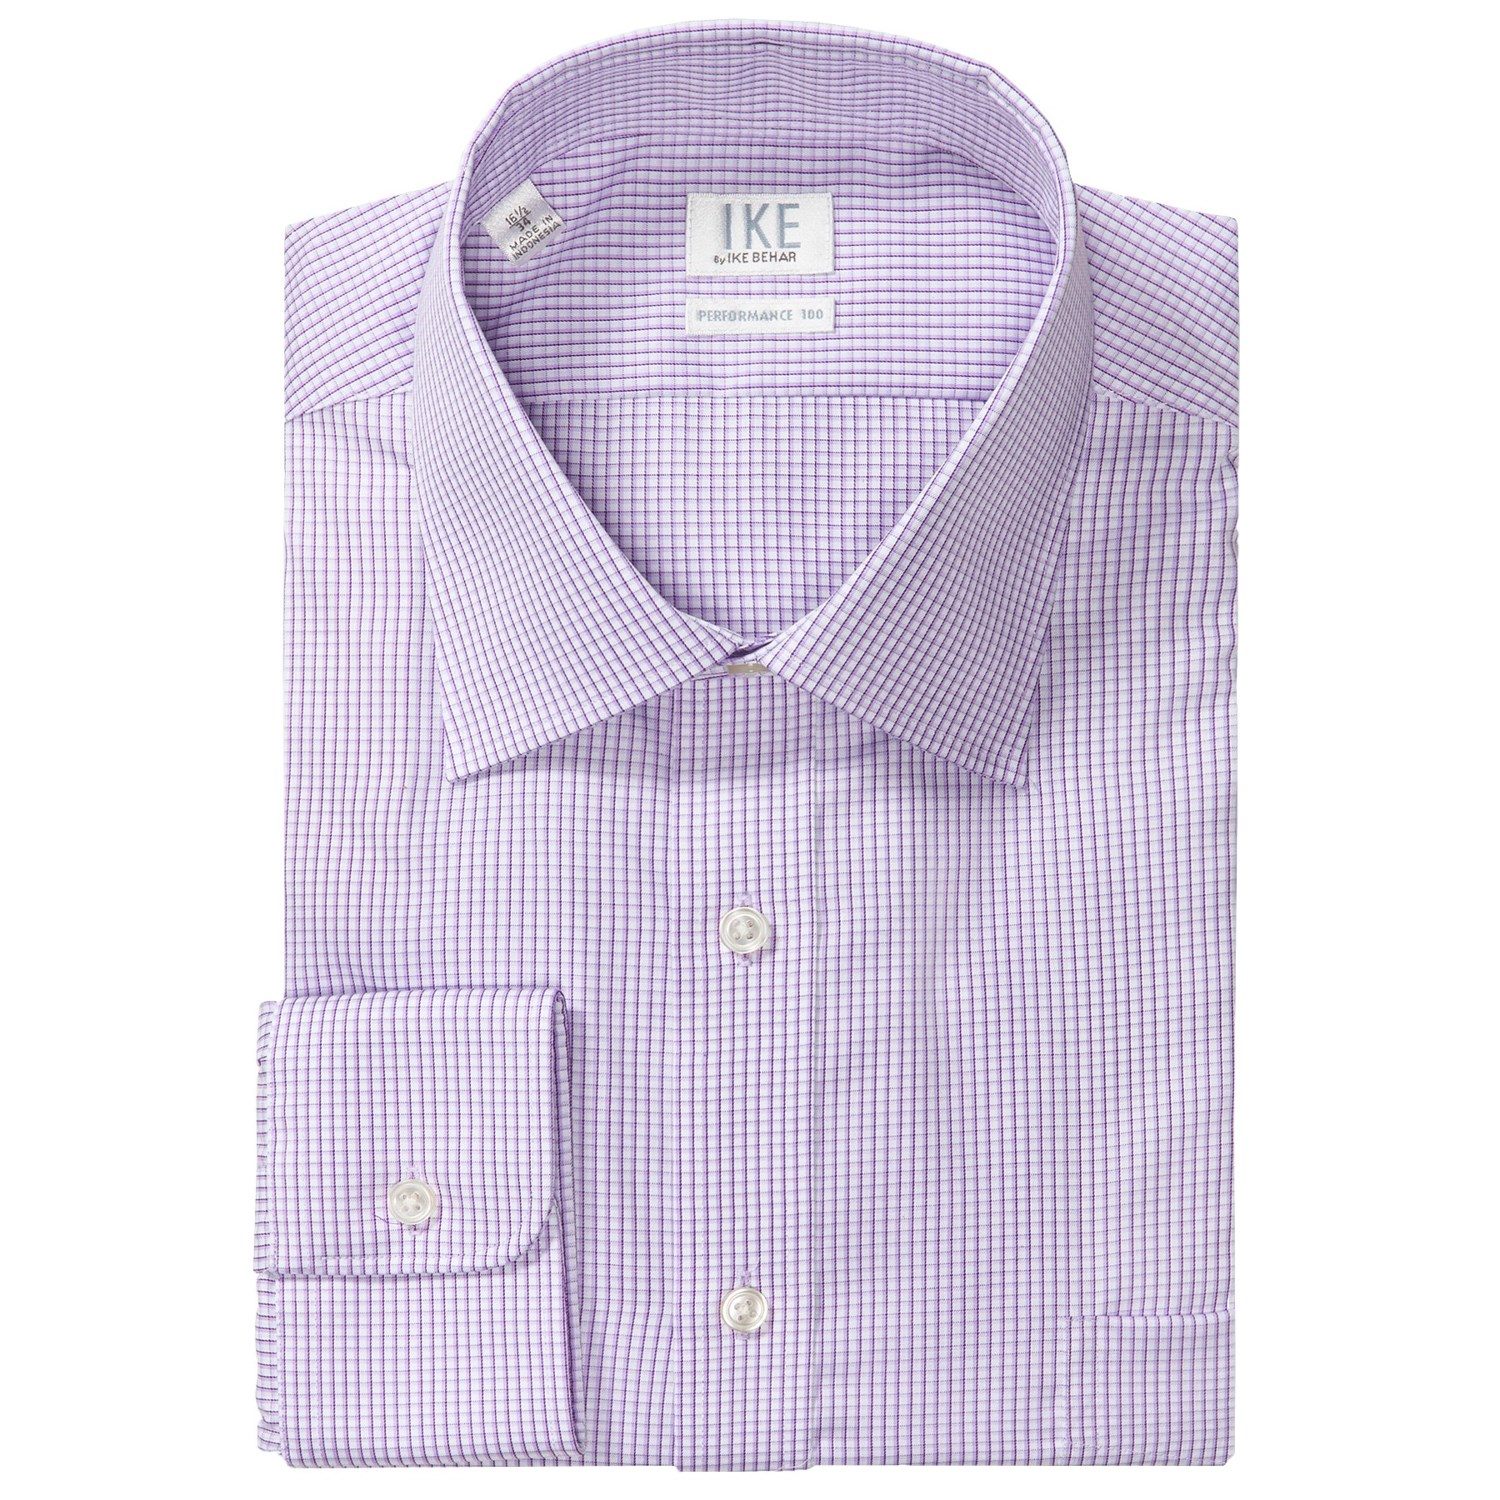 Ike by ike behar check dress shirt no iron cotton long for Mens no iron dress shirts